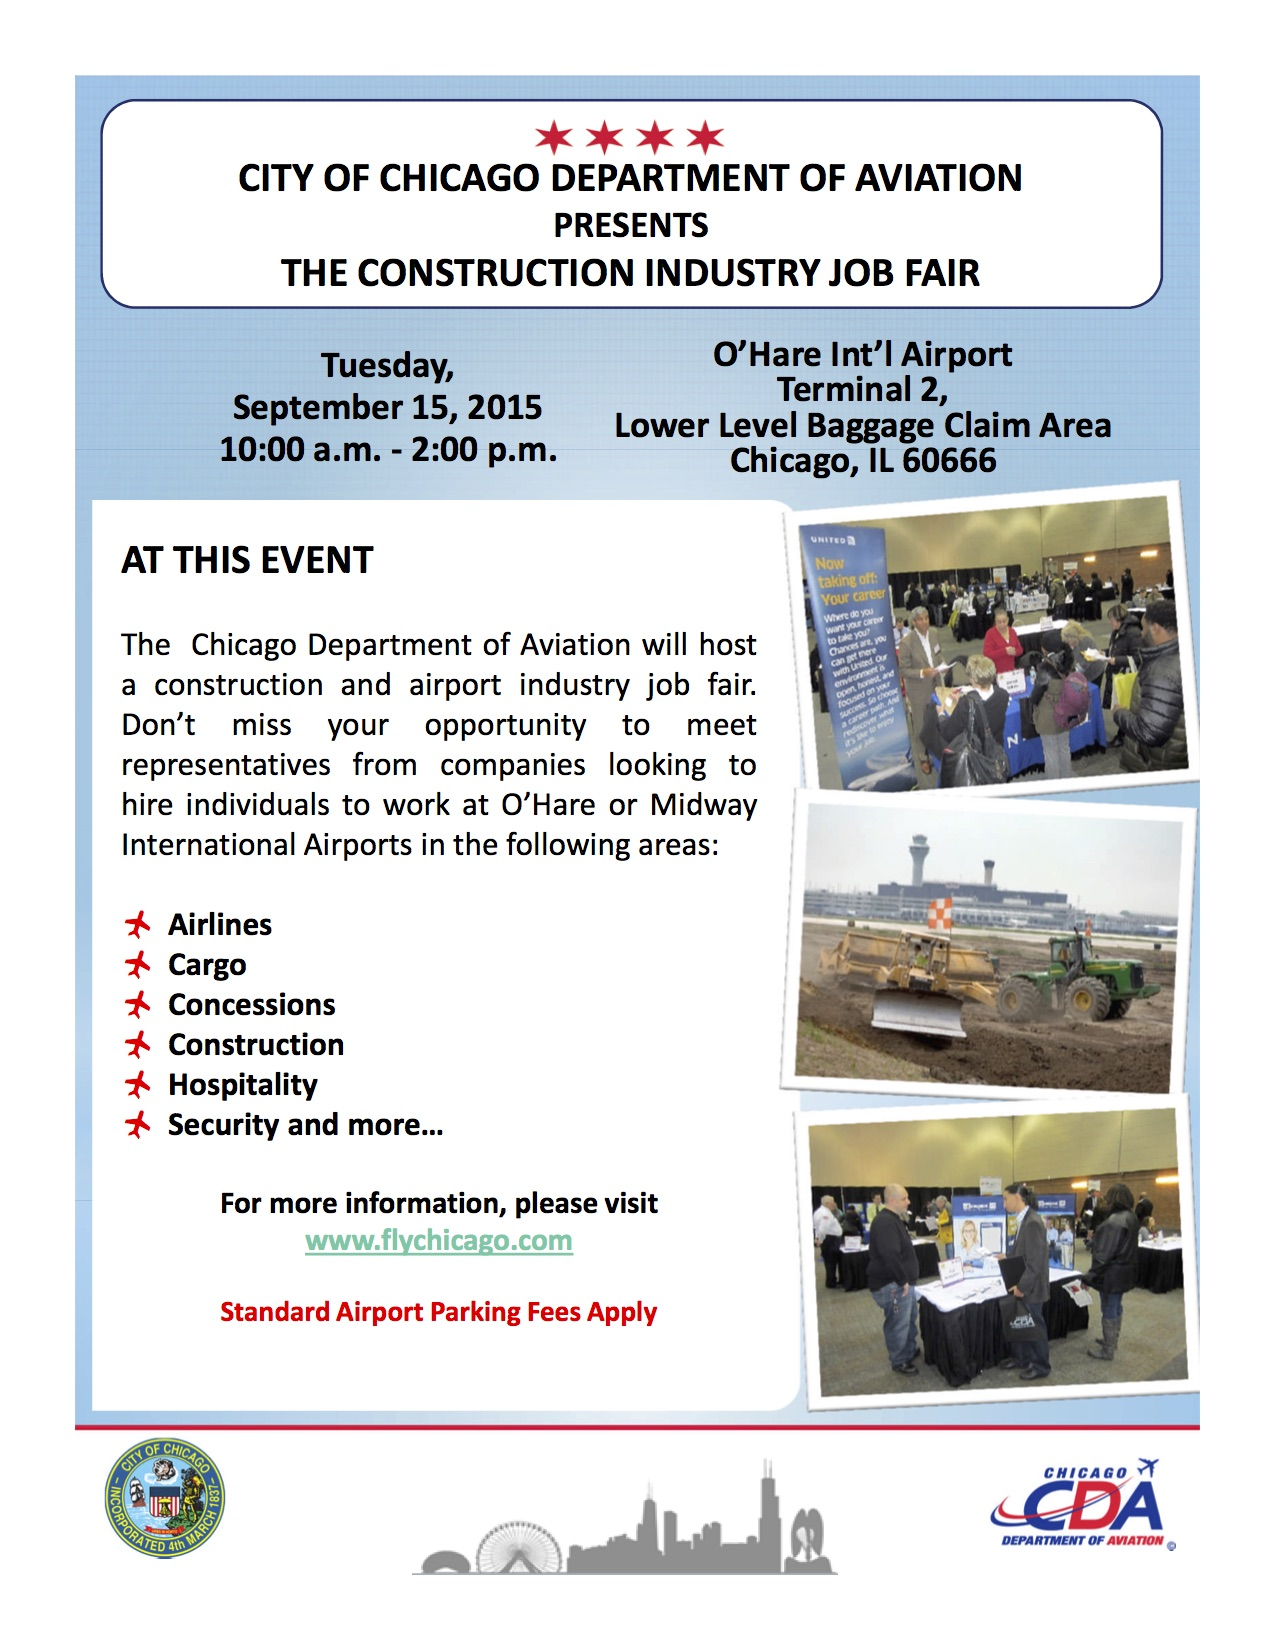 CDA_Job_Fair_2015_Flyer.jpg